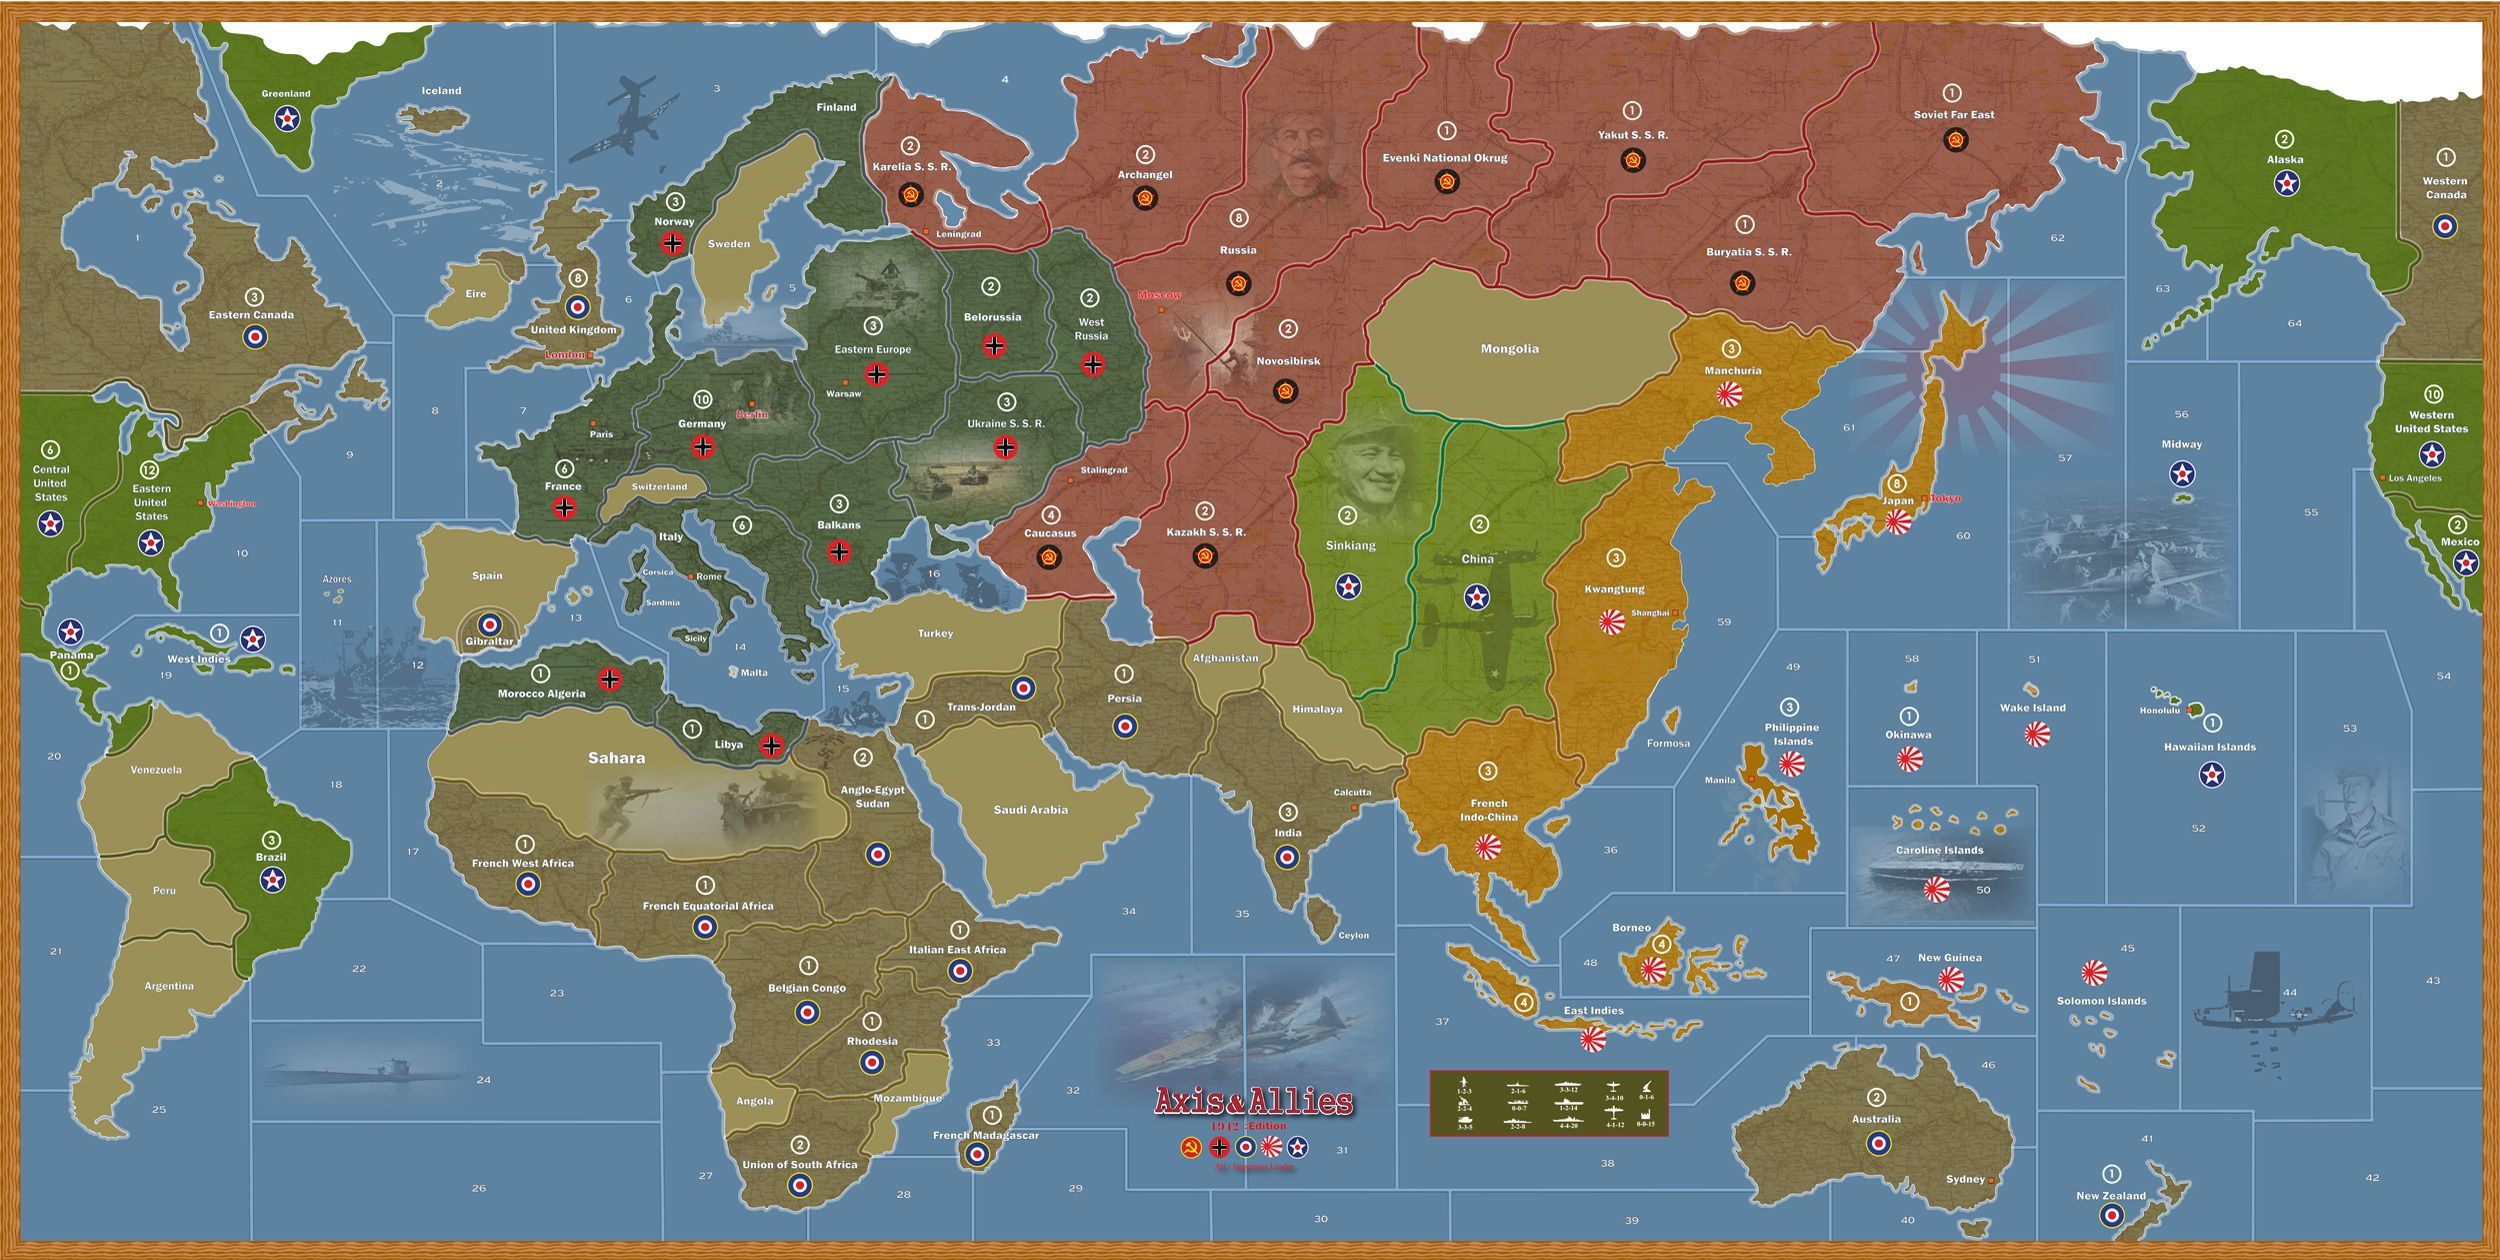 Large axis and allies maps lets play axis and allies explore game boards board games and more gumiabroncs Images